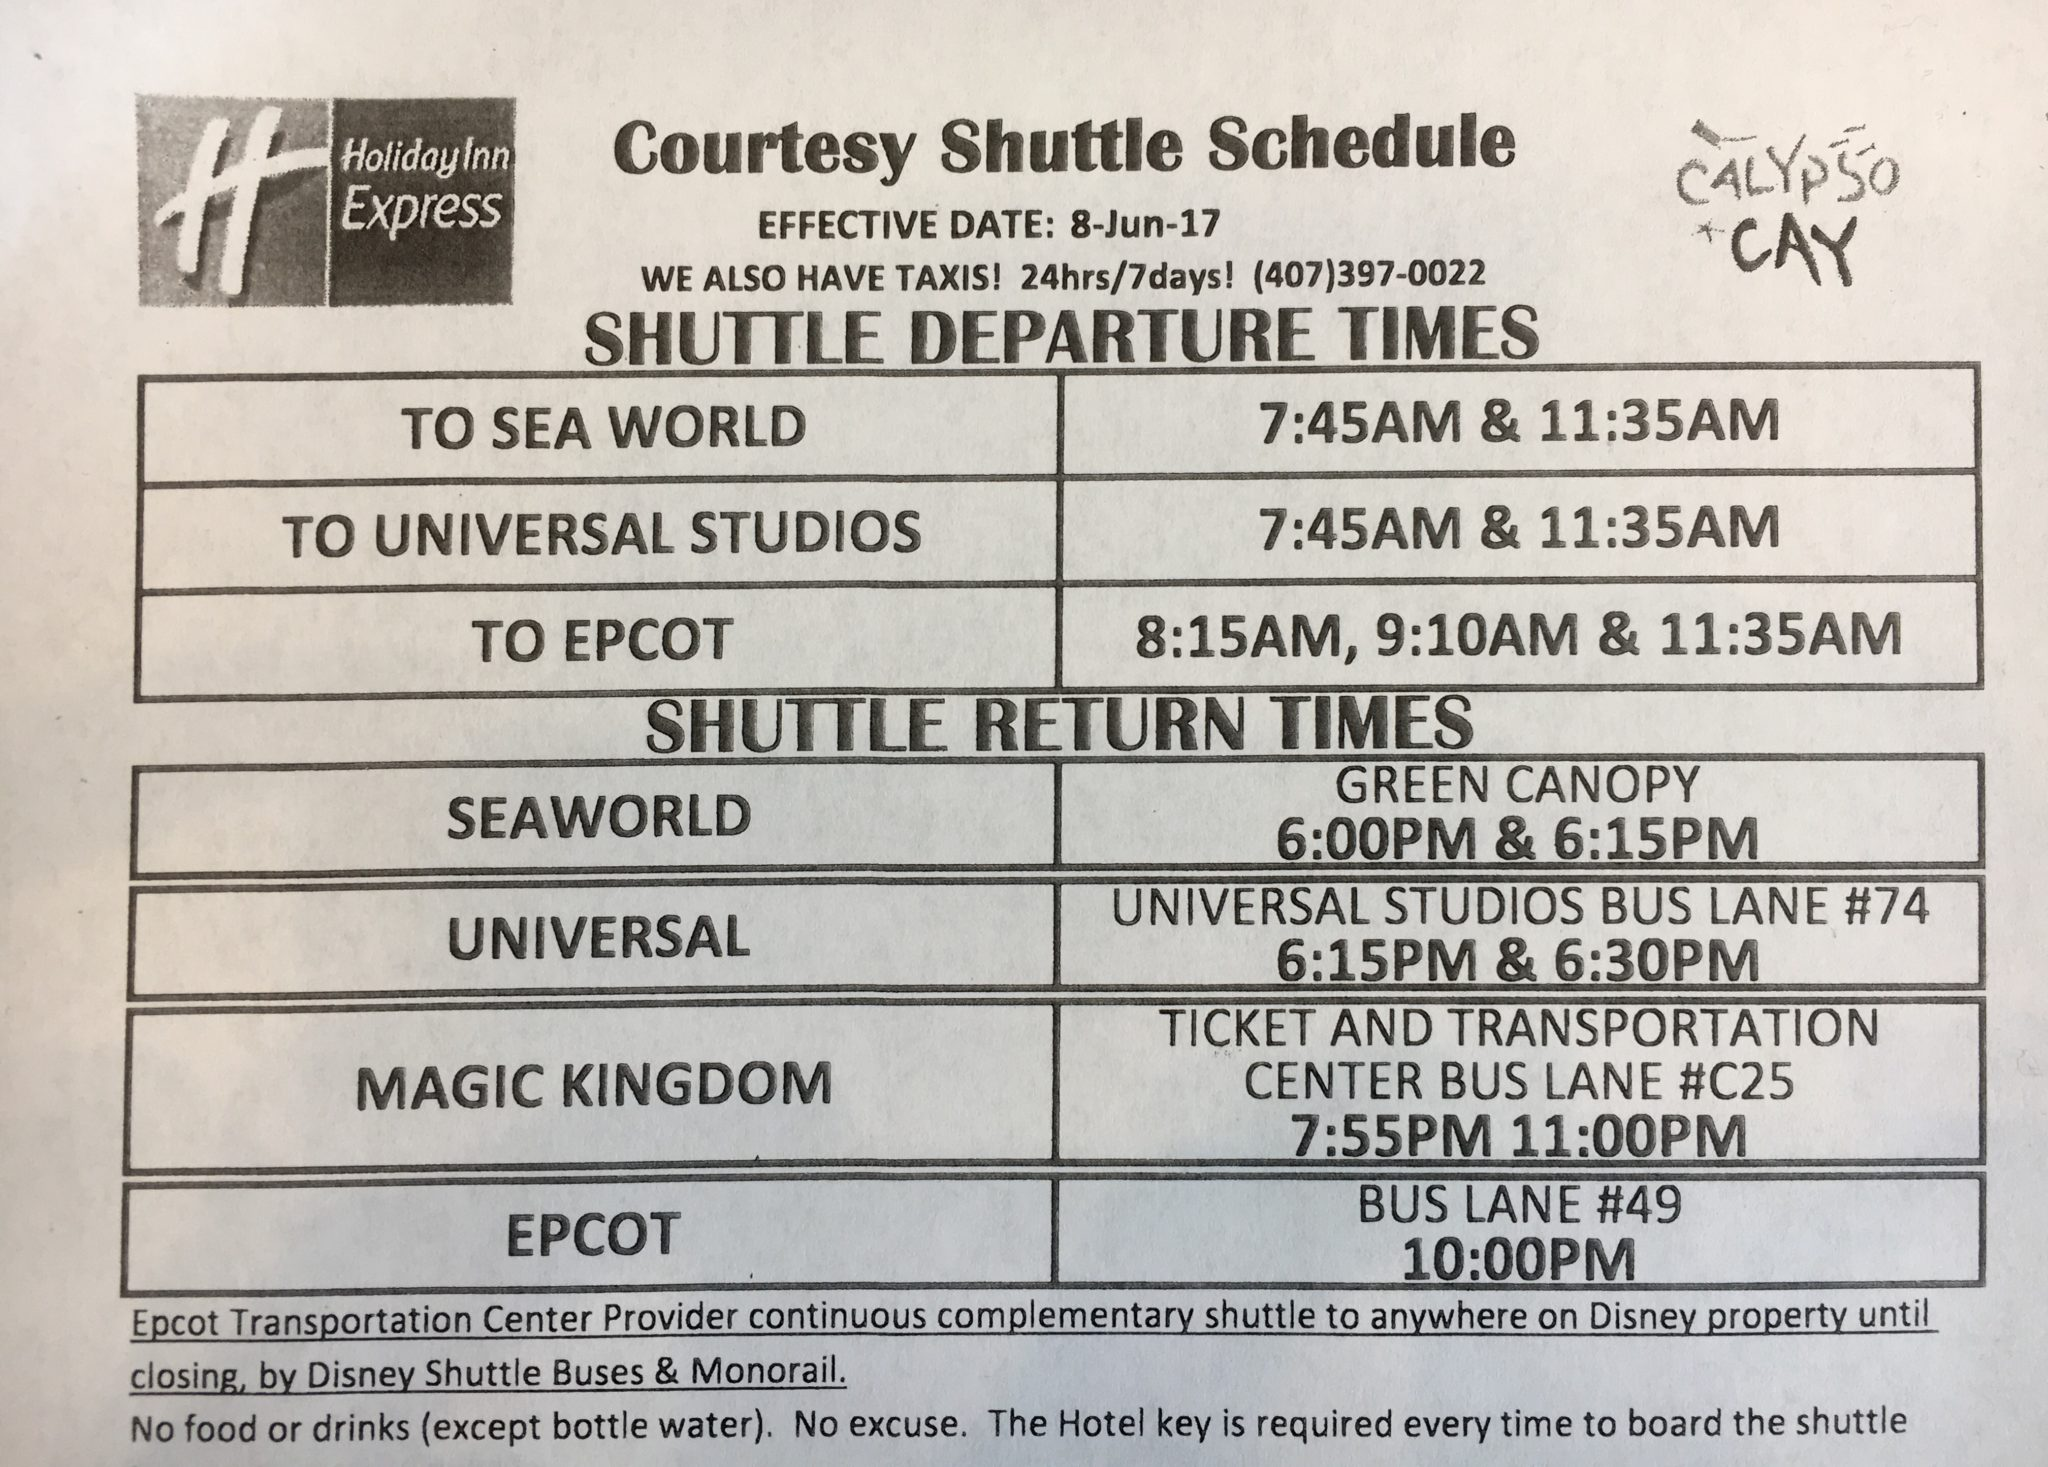 Free shuttle services